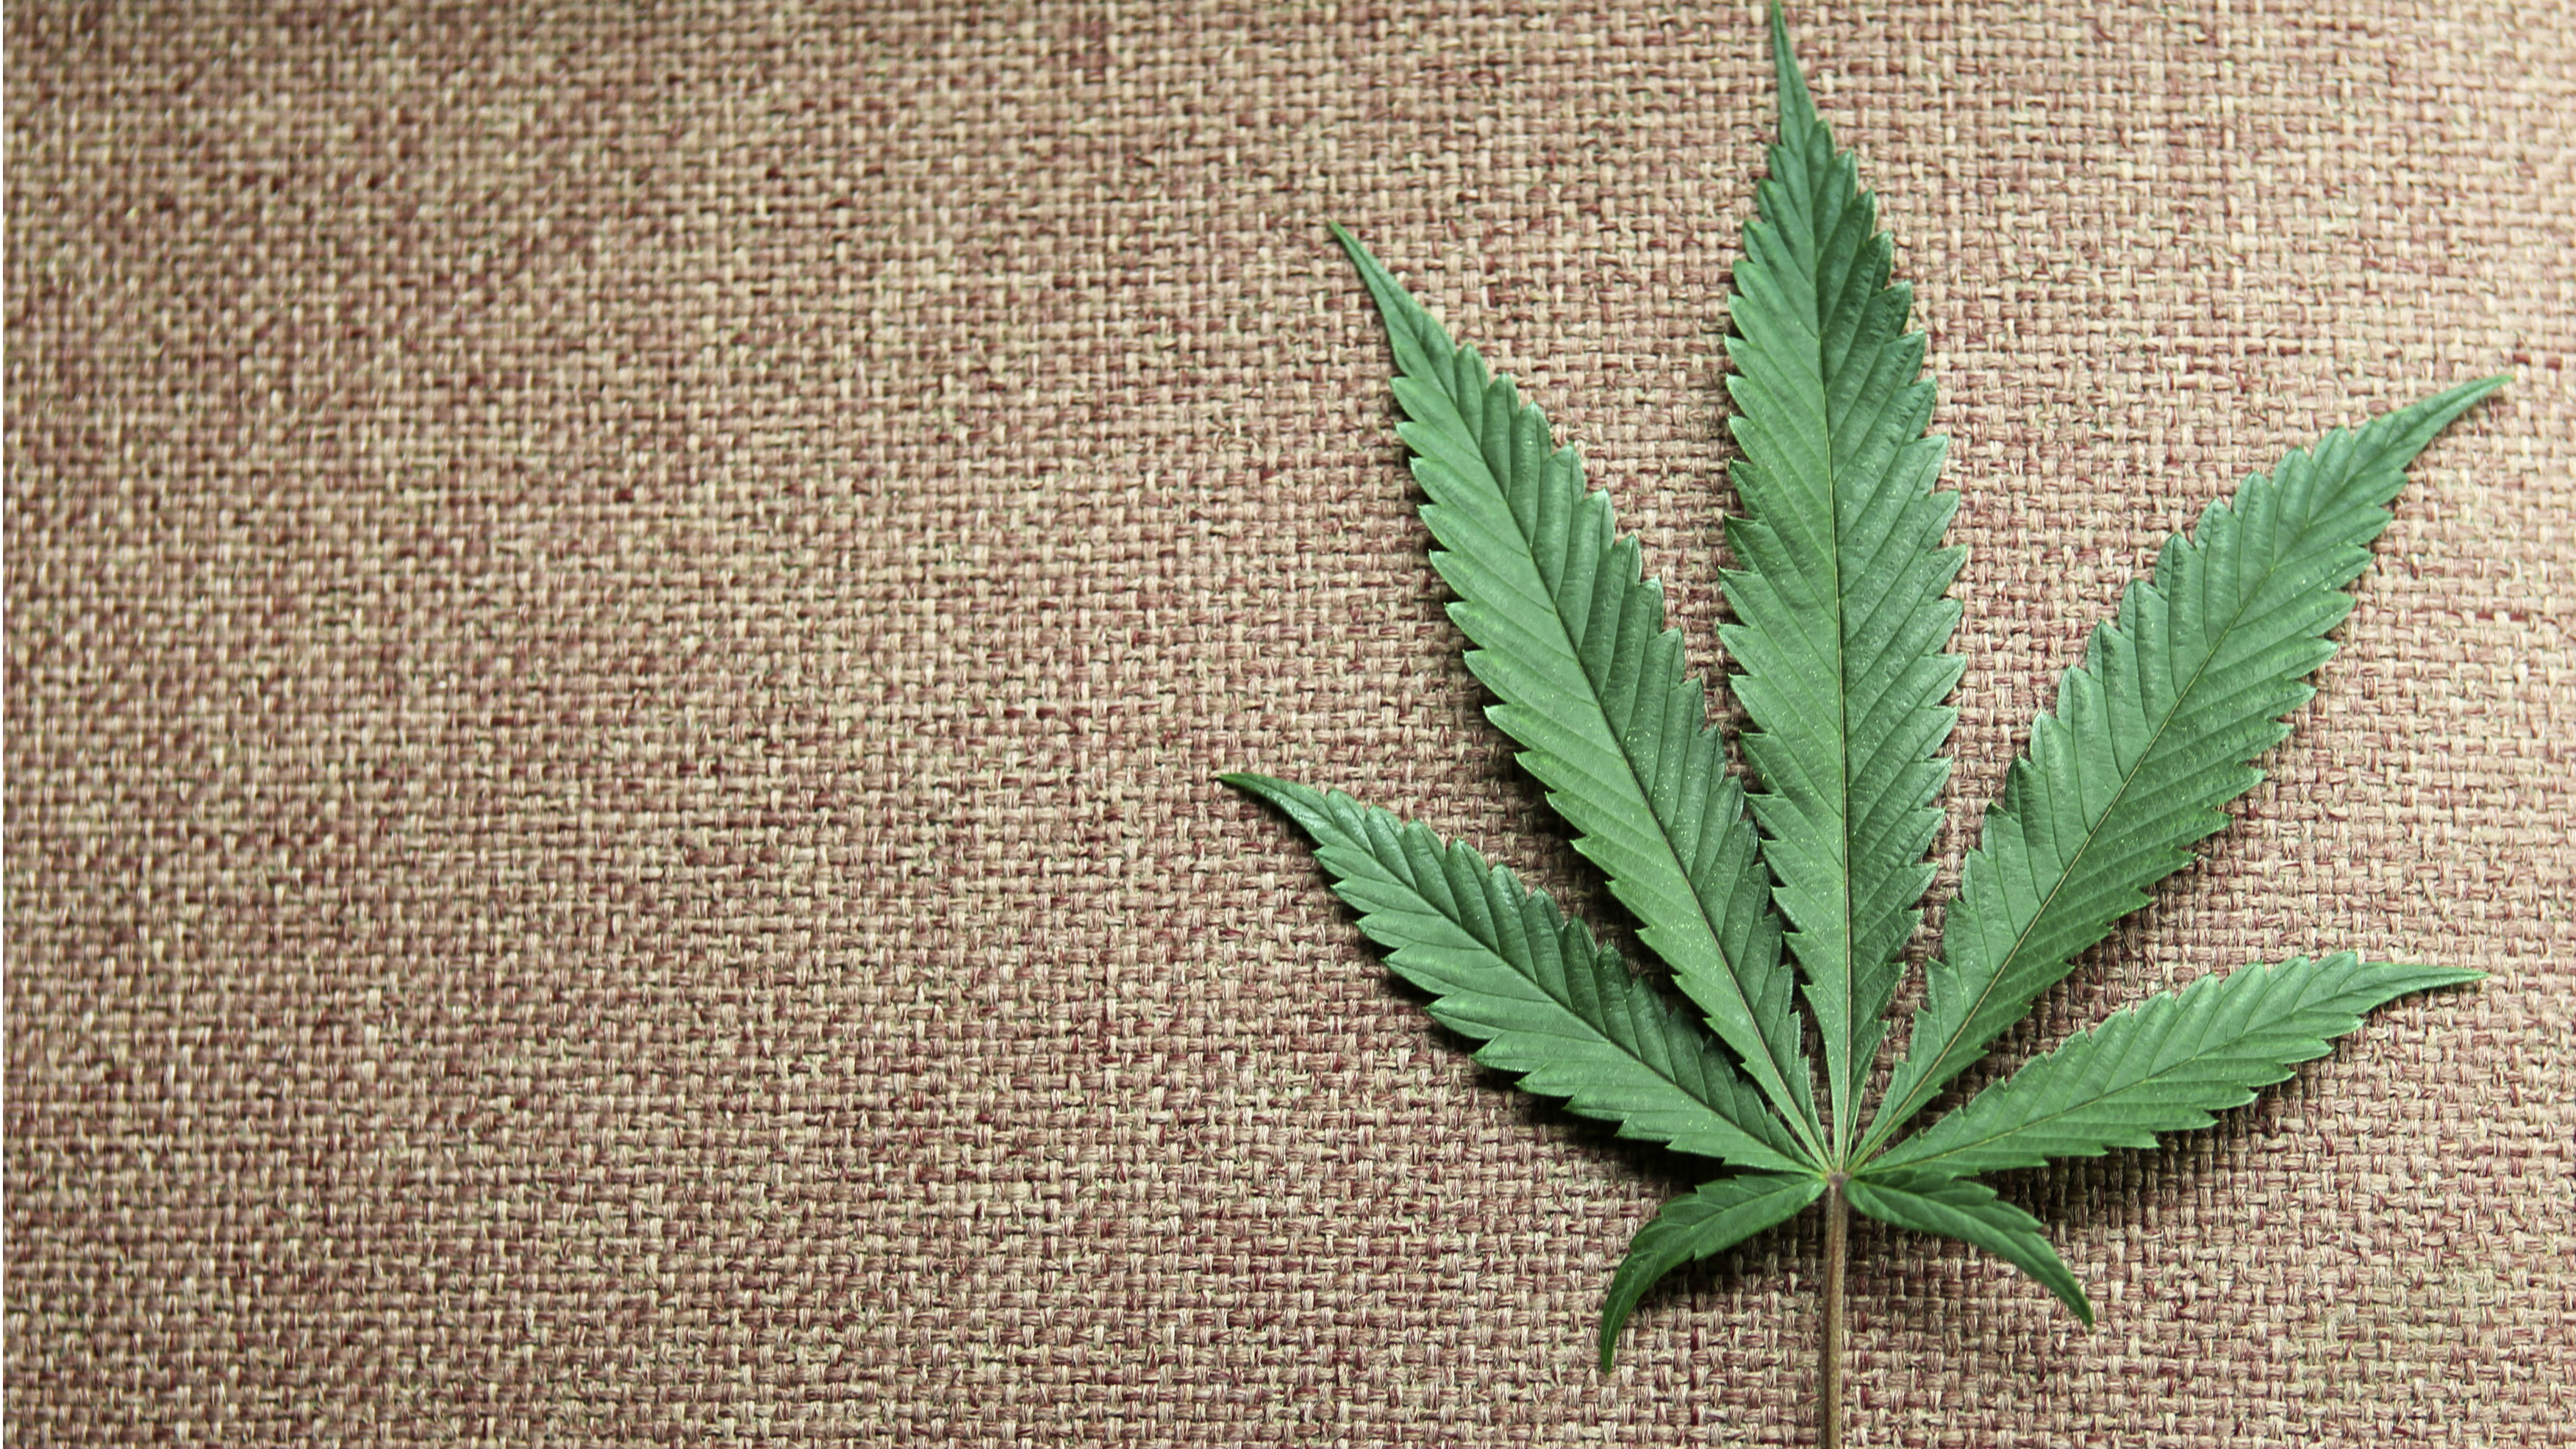 A marijuana leaf is displayed at Canna Pi medical marijuana dispensary in Seattle, Washington, November 27, 2012. Washington State's Initiative 502, that was approved by voters in the November 6, 2012 general election, legalizes marijuana in Washington State effective December 6, 2012. Marijuana remains illegal at the Federal level. Picture taken November 27, 2012.